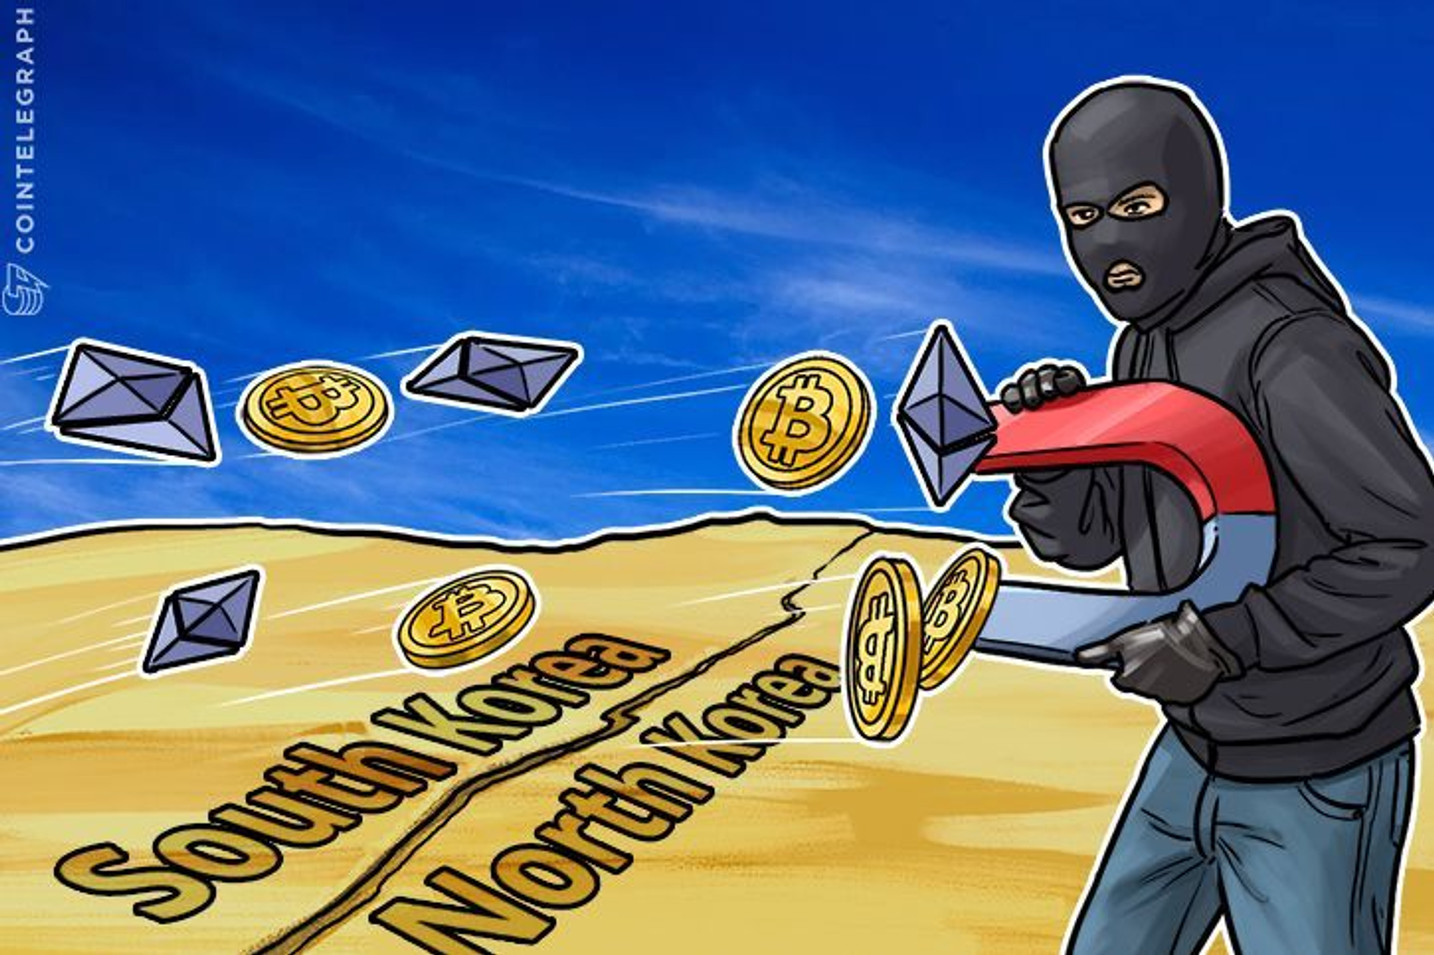 NK 'Absolutely Amassing' Bitcoin, South Korean Exchange Bankrupted By Hack